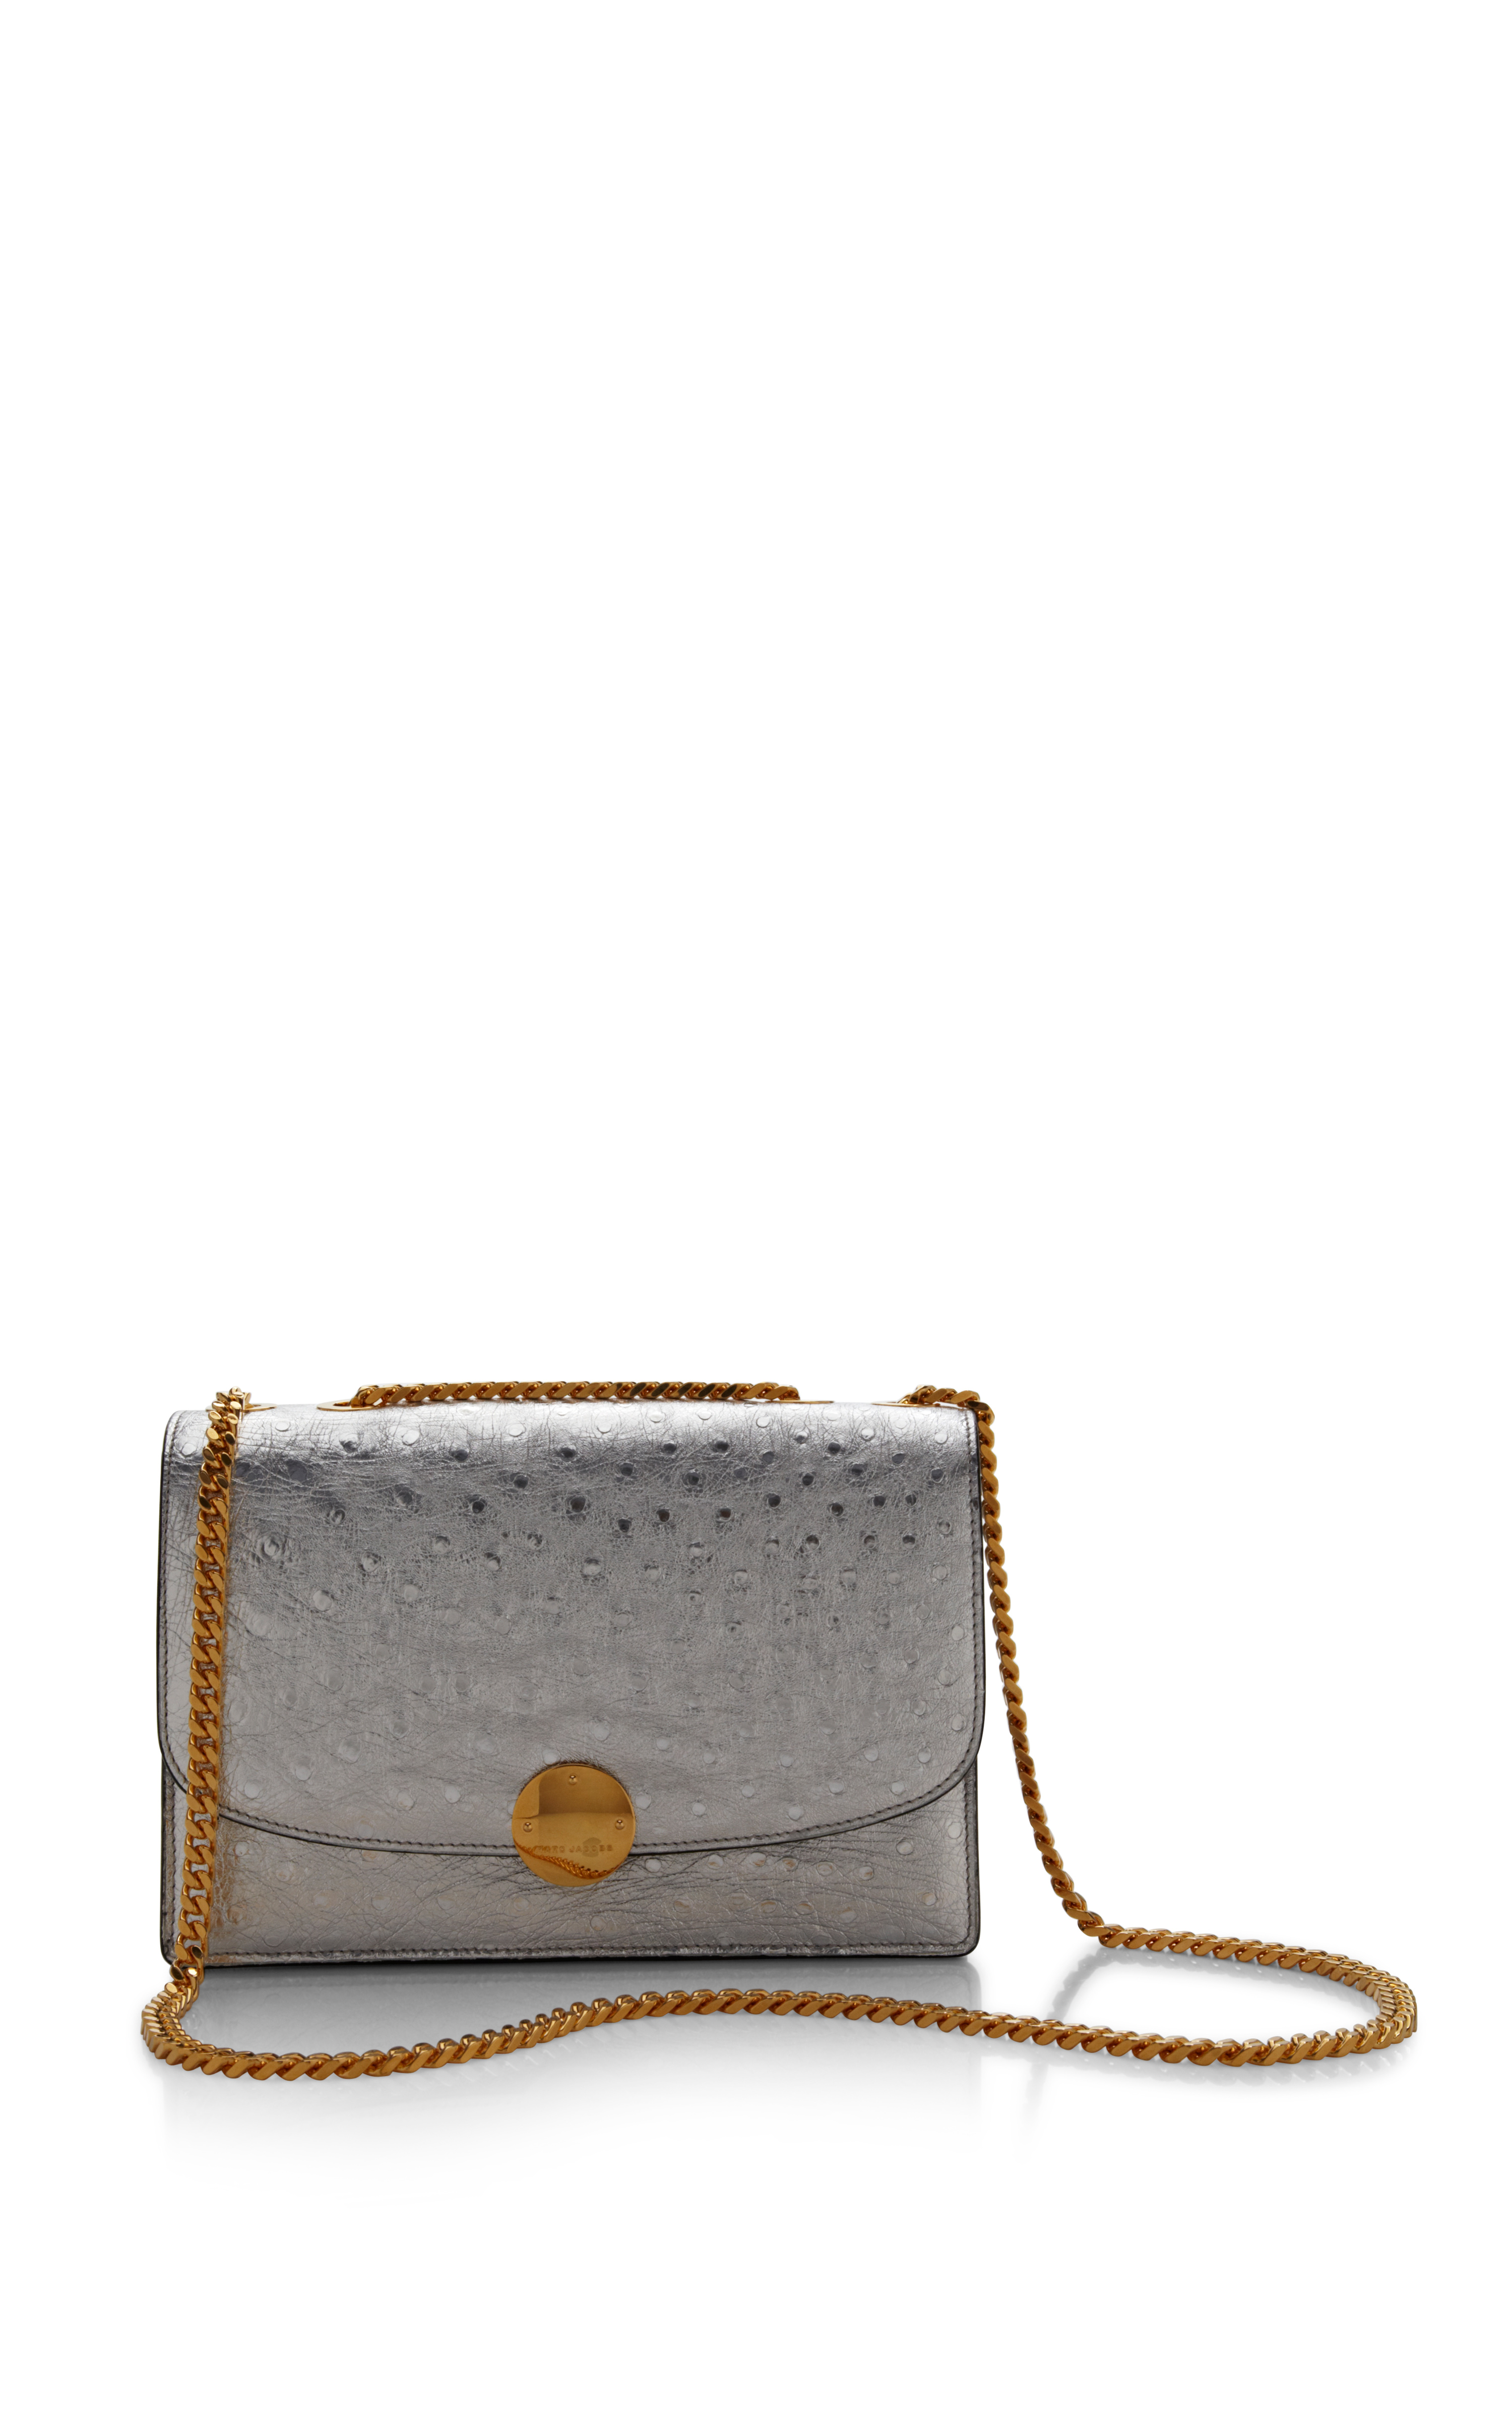 Ostrich Trouble Bag In Silver by Marc Jacobs - Moda Operandi